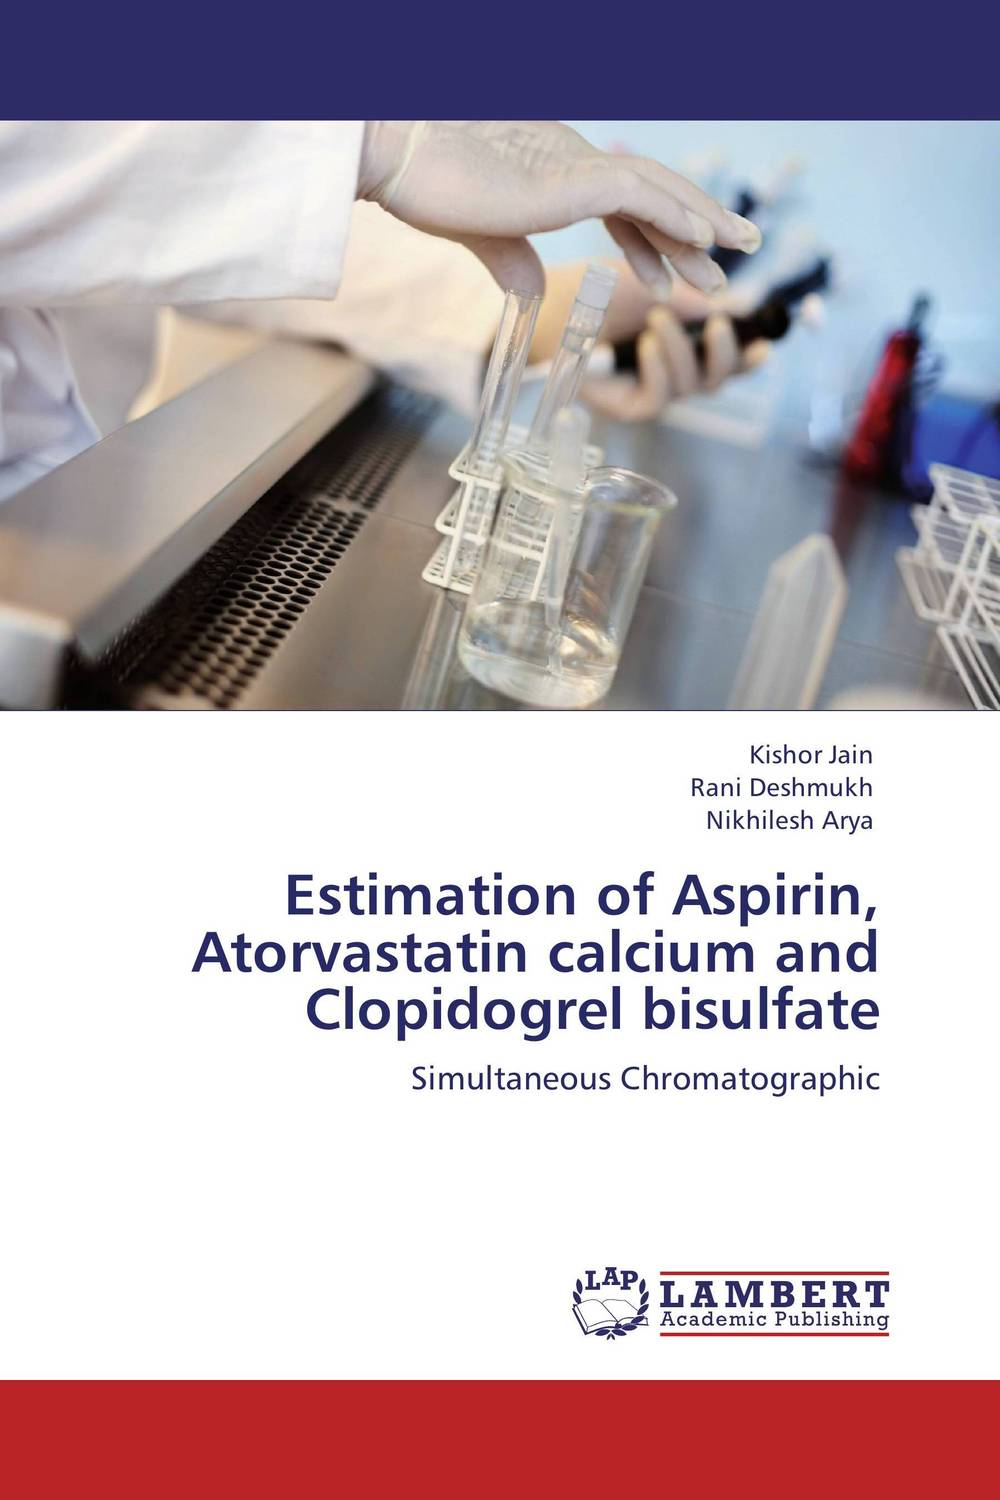 Estimation of Aspirin, Atorvastatin calcium and Clopidogrel bisulfate rosuvastatin versus a combination of atorvastatin and ezetimibe